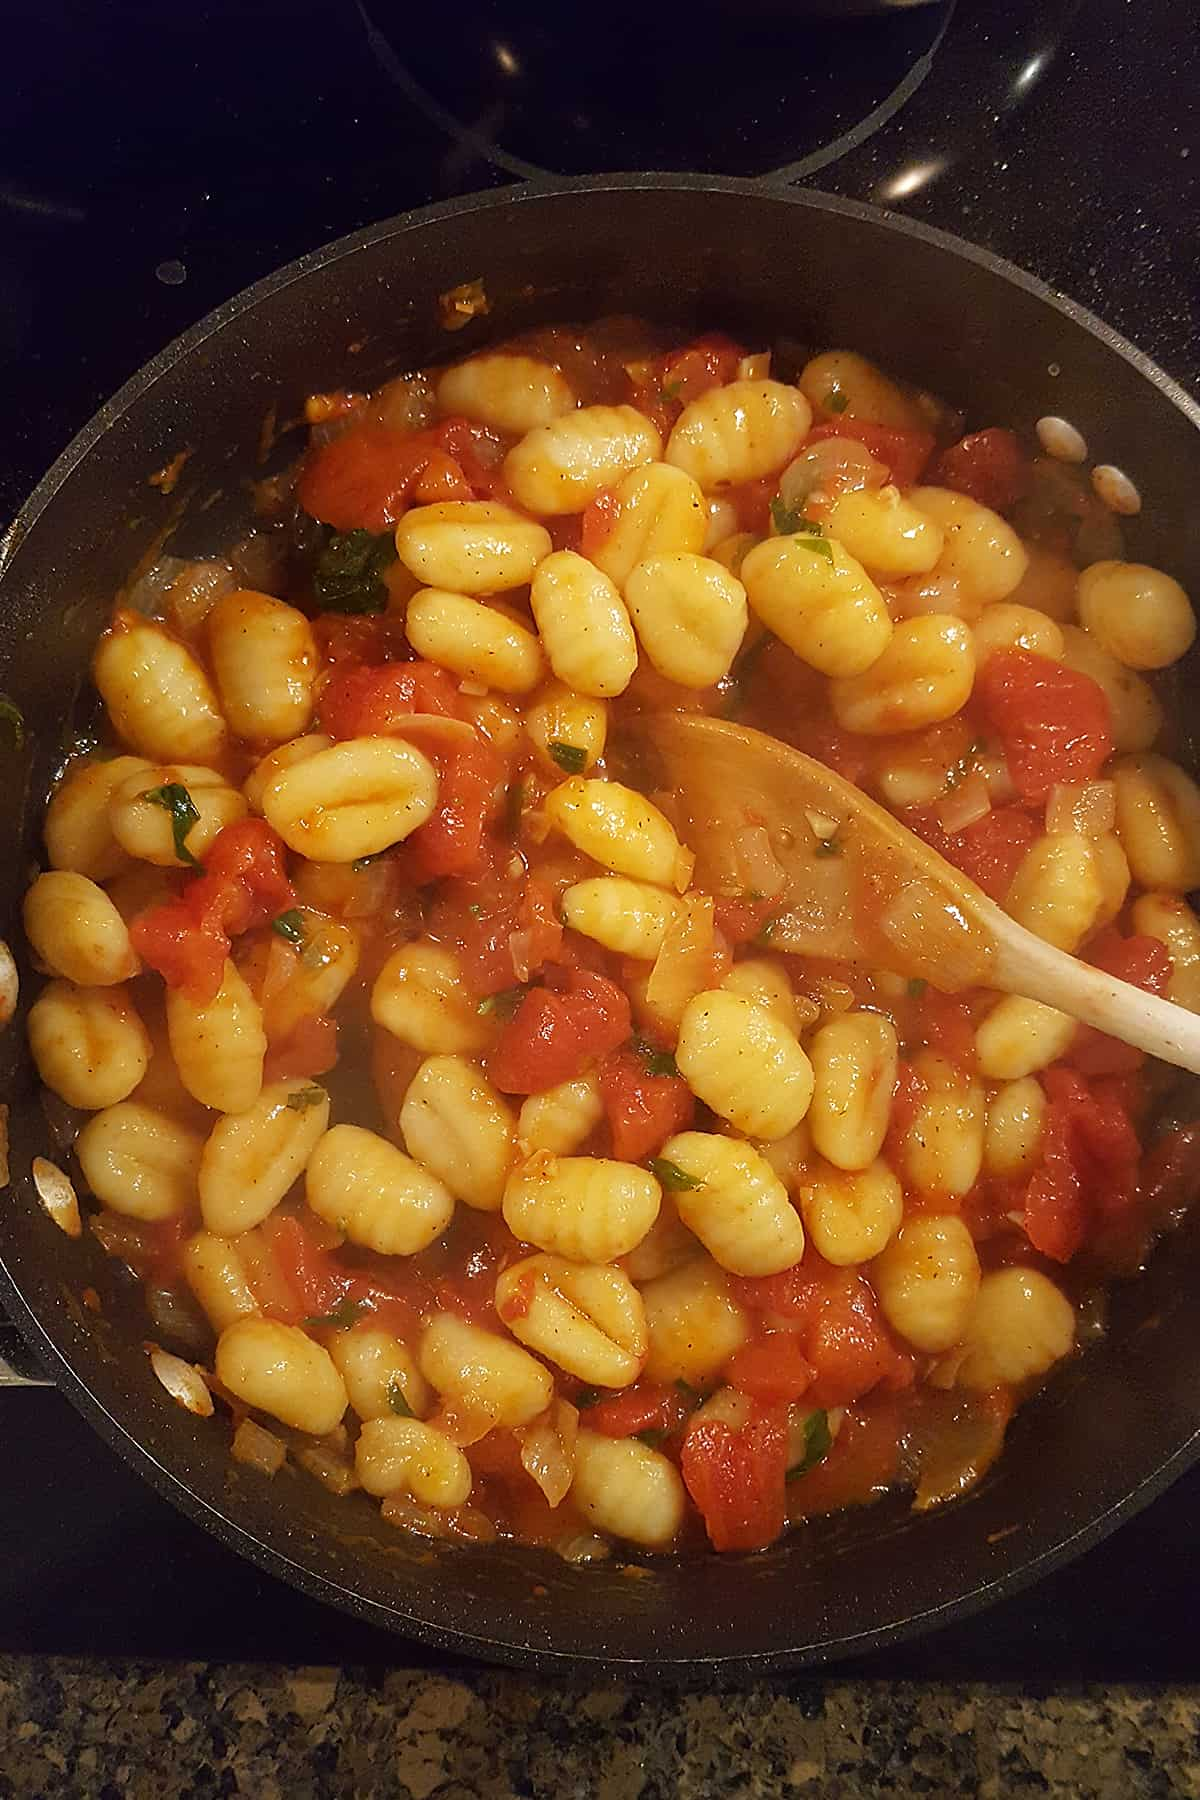 Gnocchi mixed with tomato sauce.